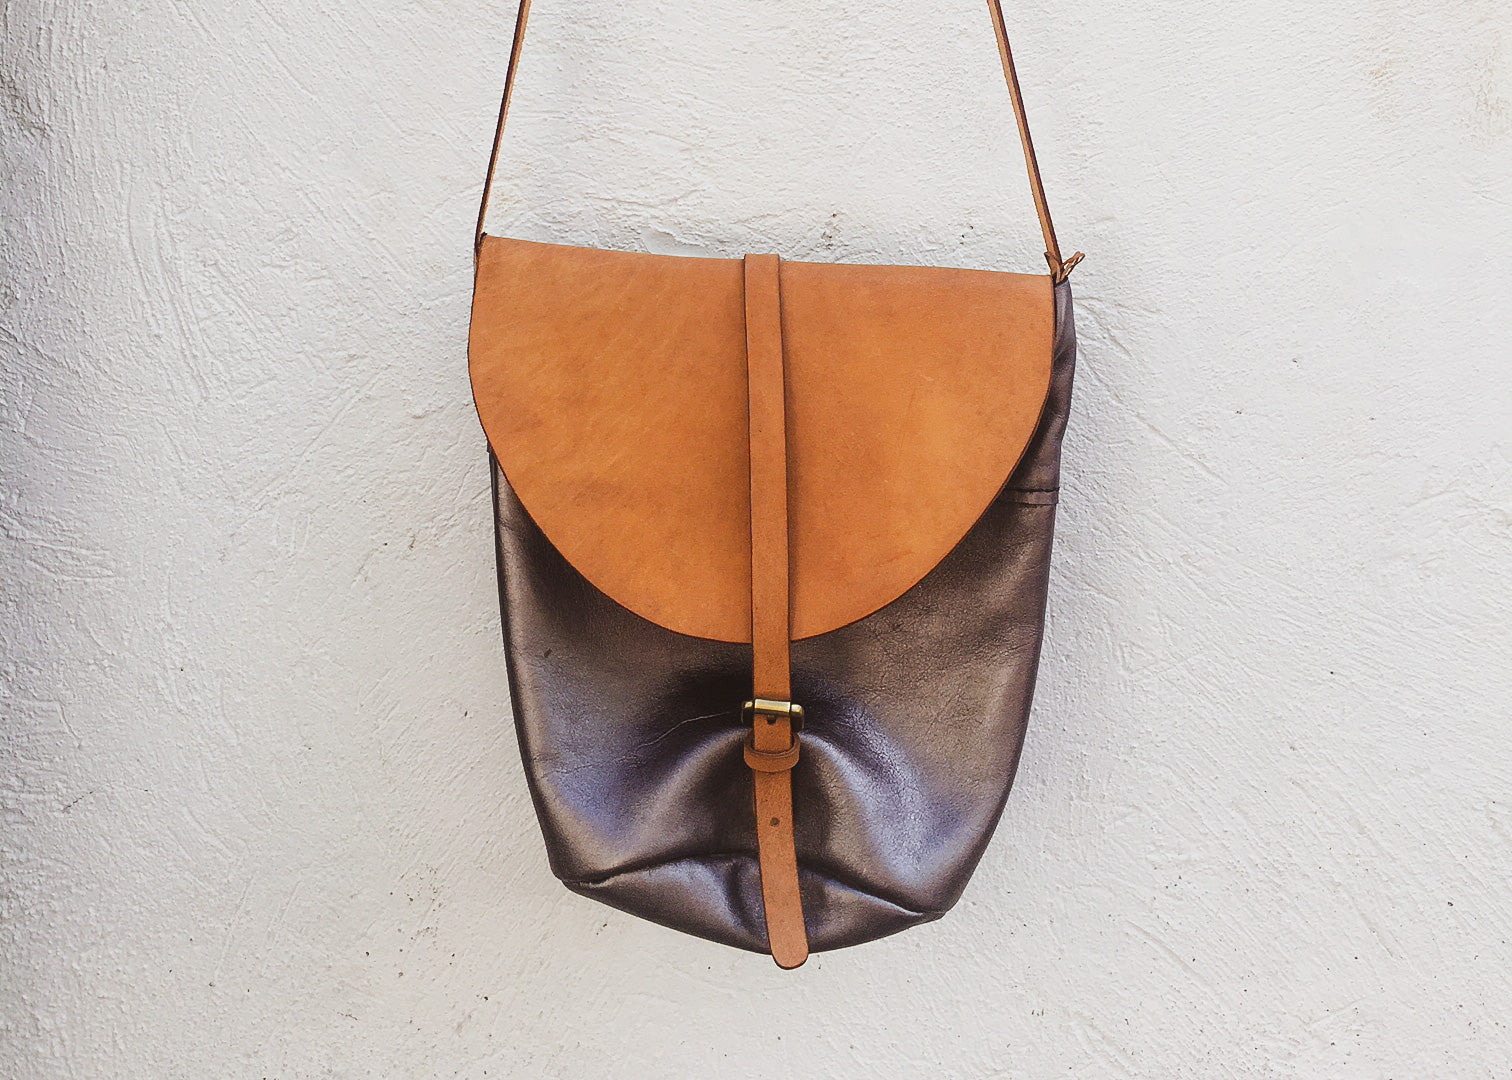 2-Way Sling - Metallic Grey w/ Natural Veg Tan